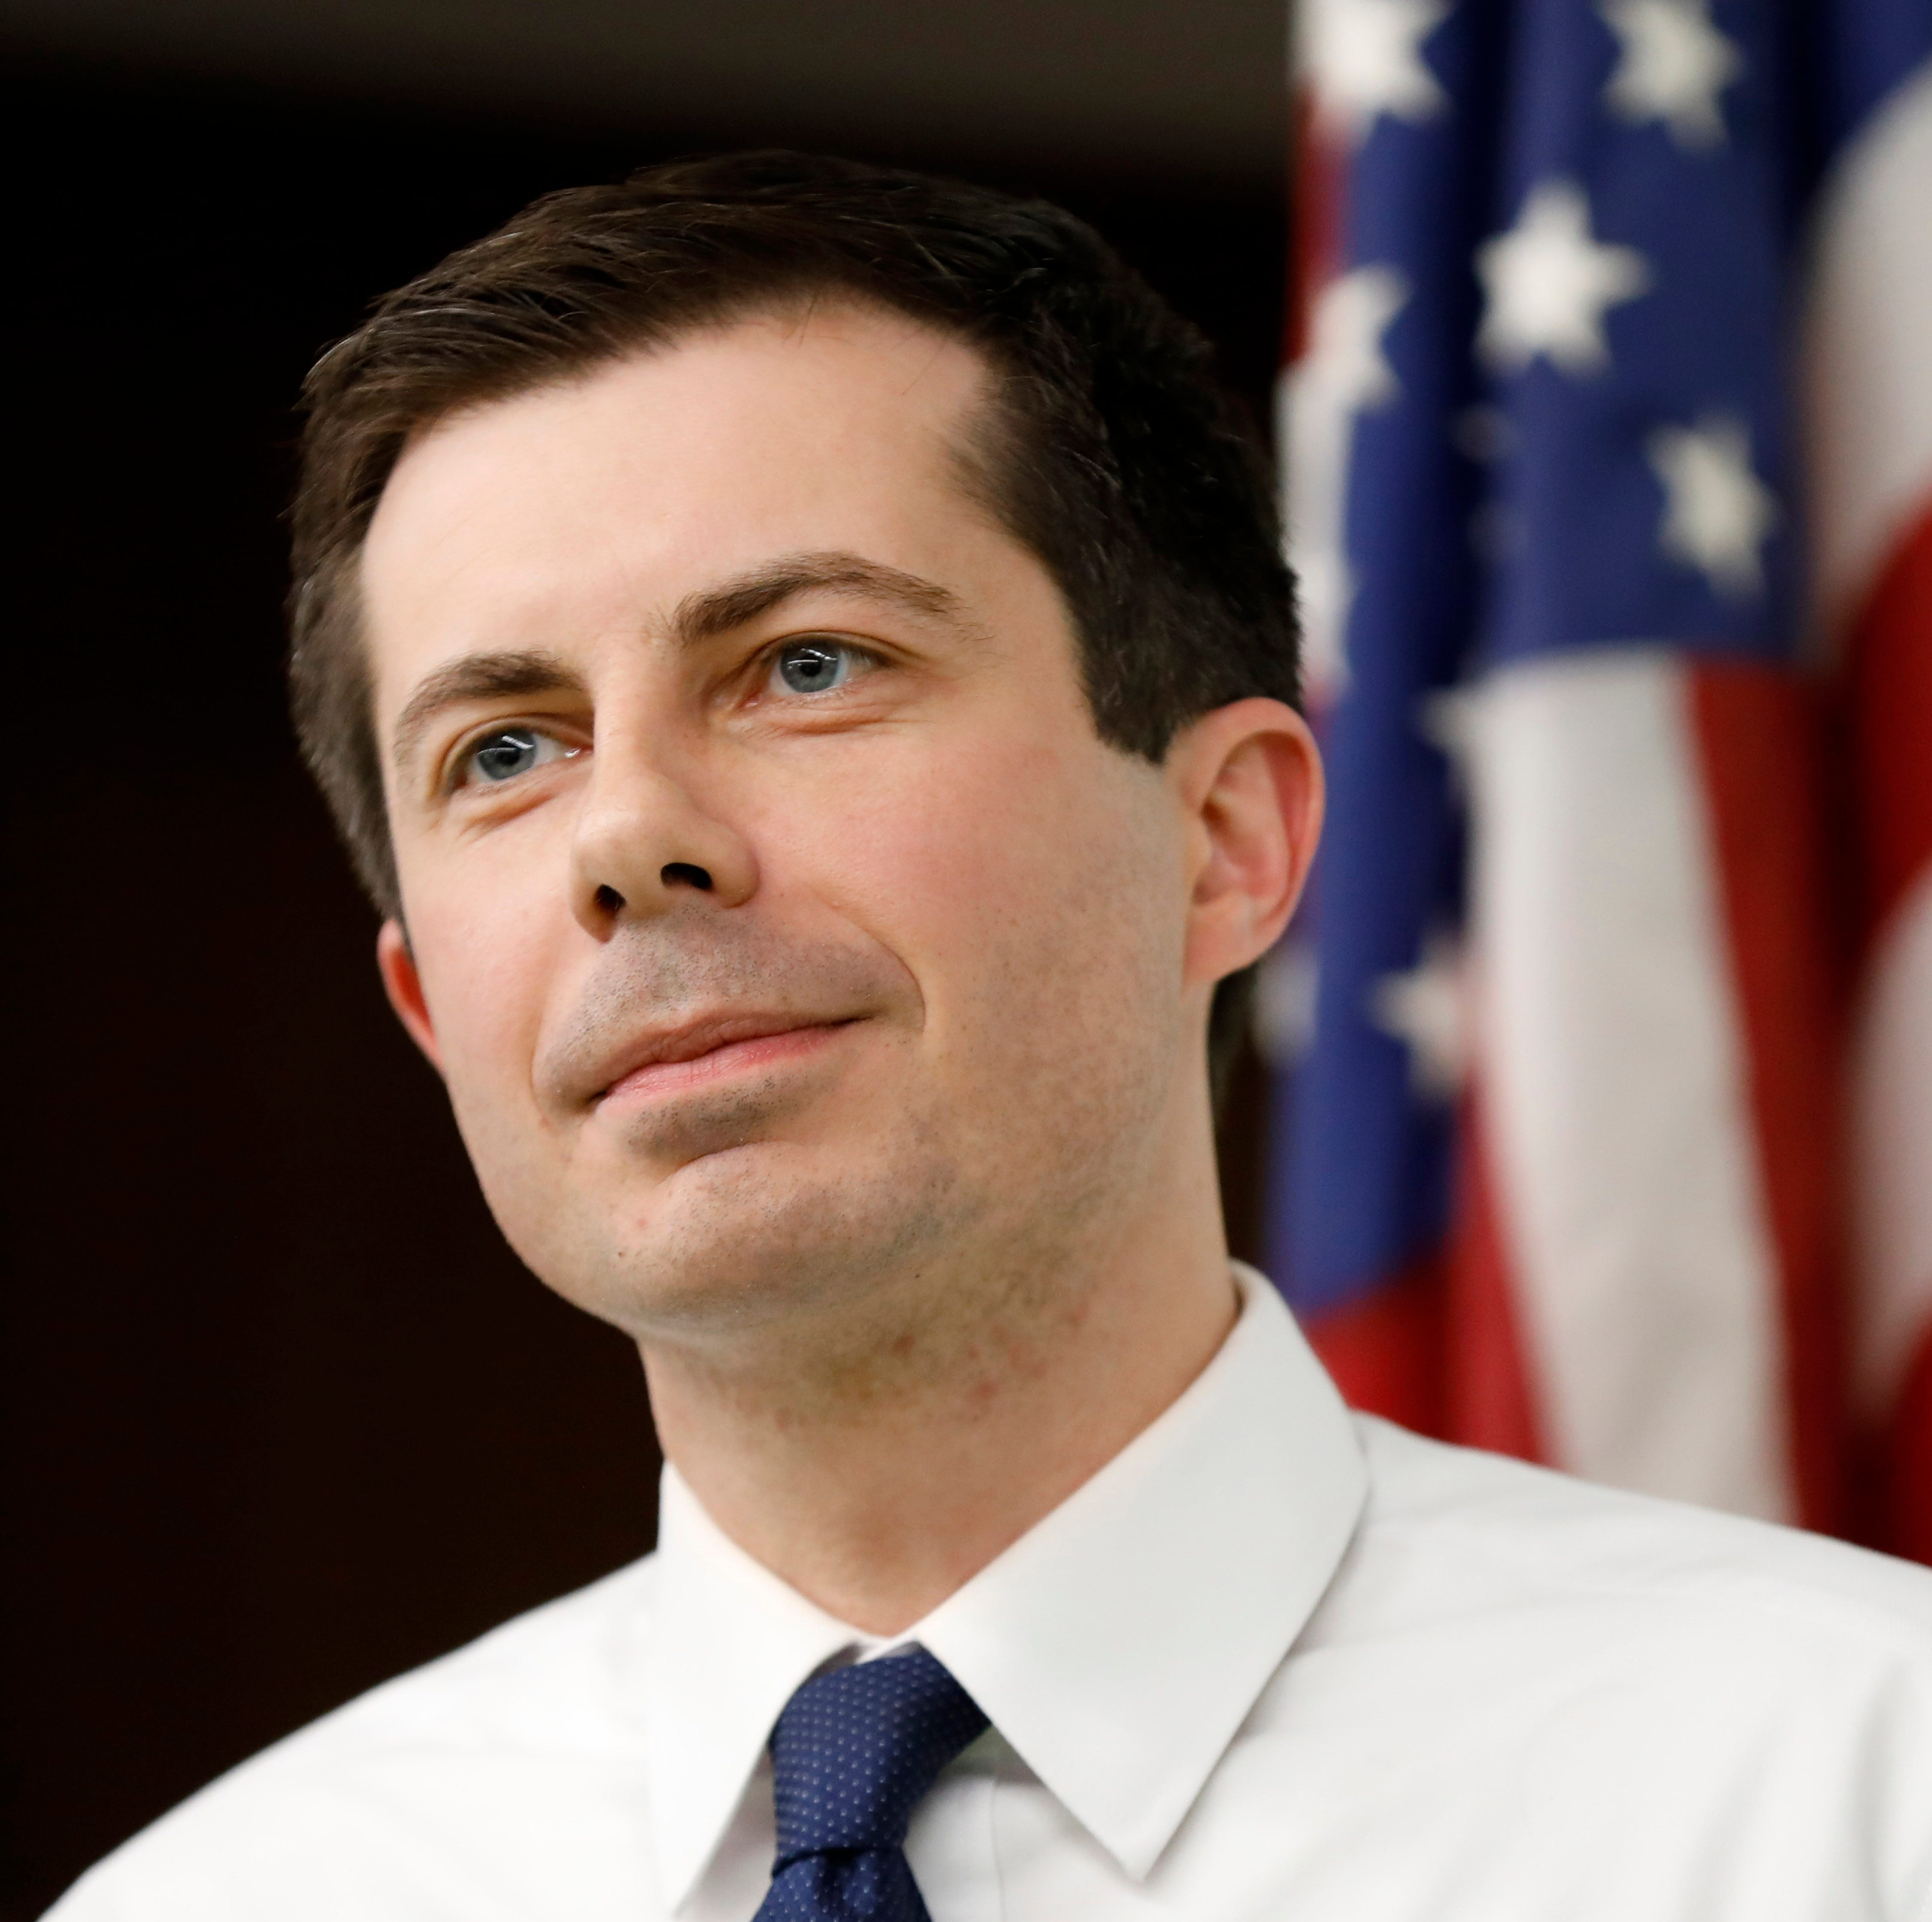 False accusation against Pete Buttigieg created by right-wing provocateur Jacob Wohl